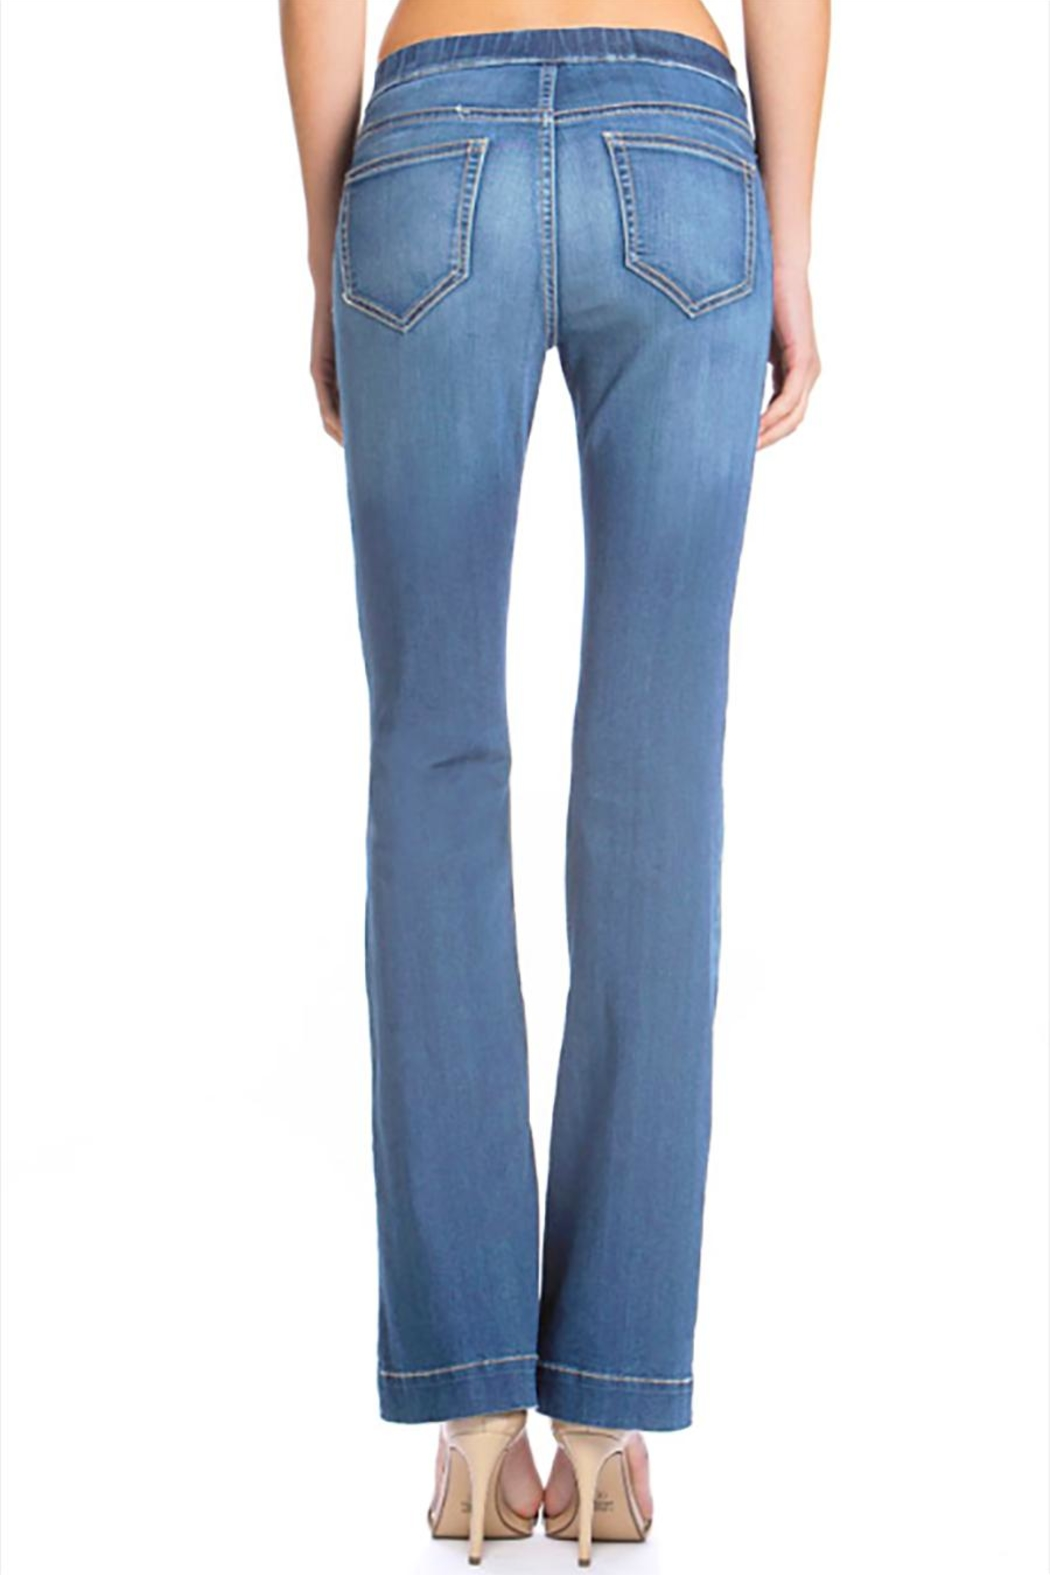 Cello Jeans Petite Medium Pullons - Side Cropped Image